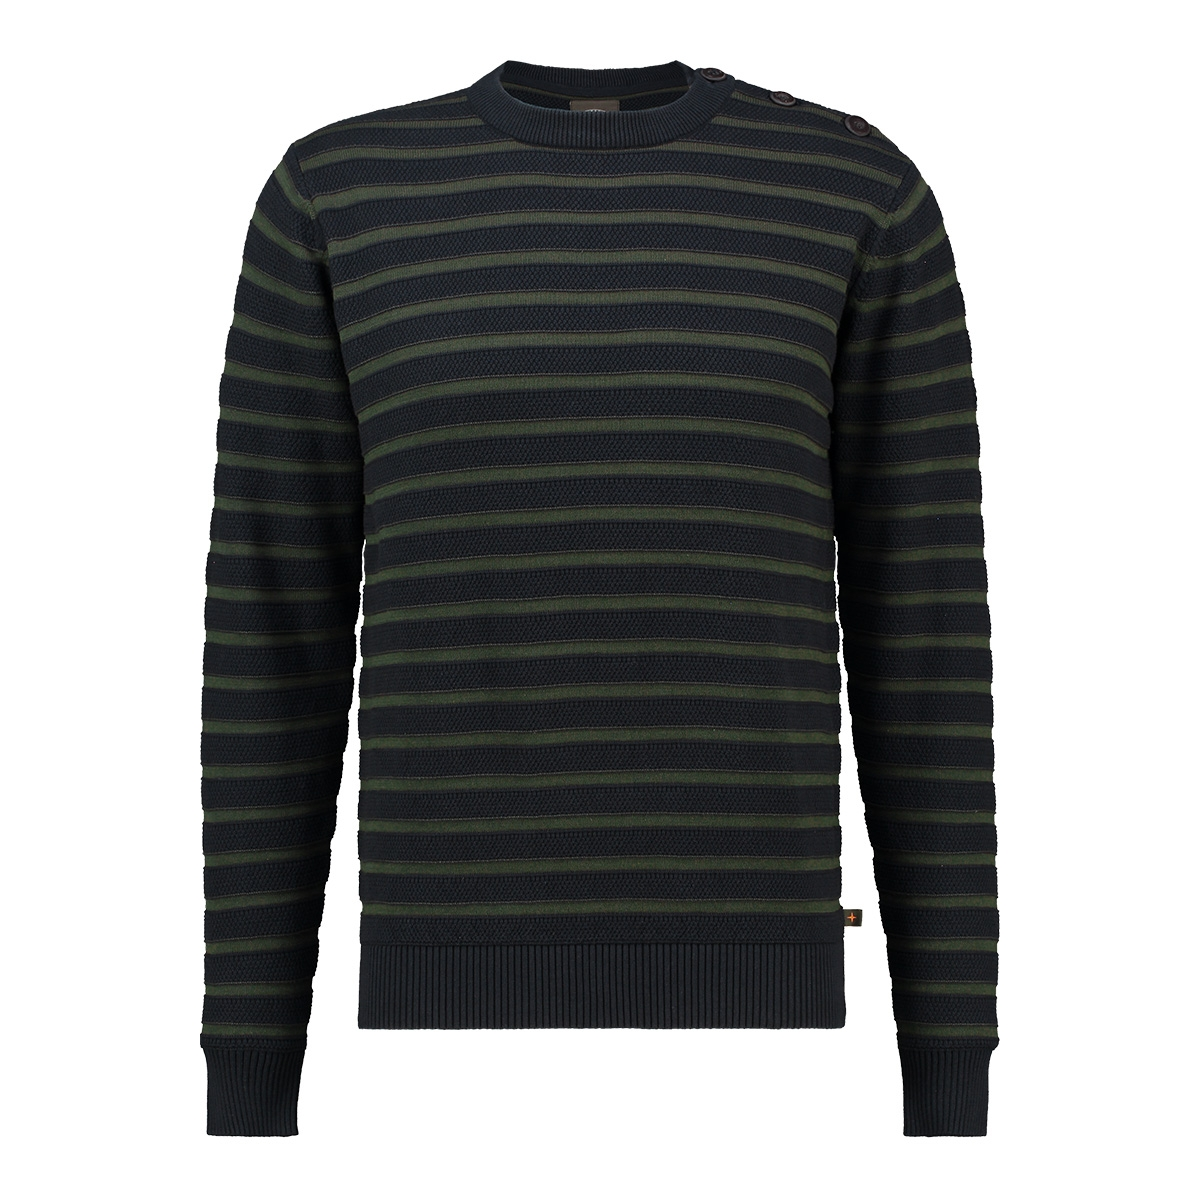 knit striped button mu13 0211 haze & finn trui sapphire army green